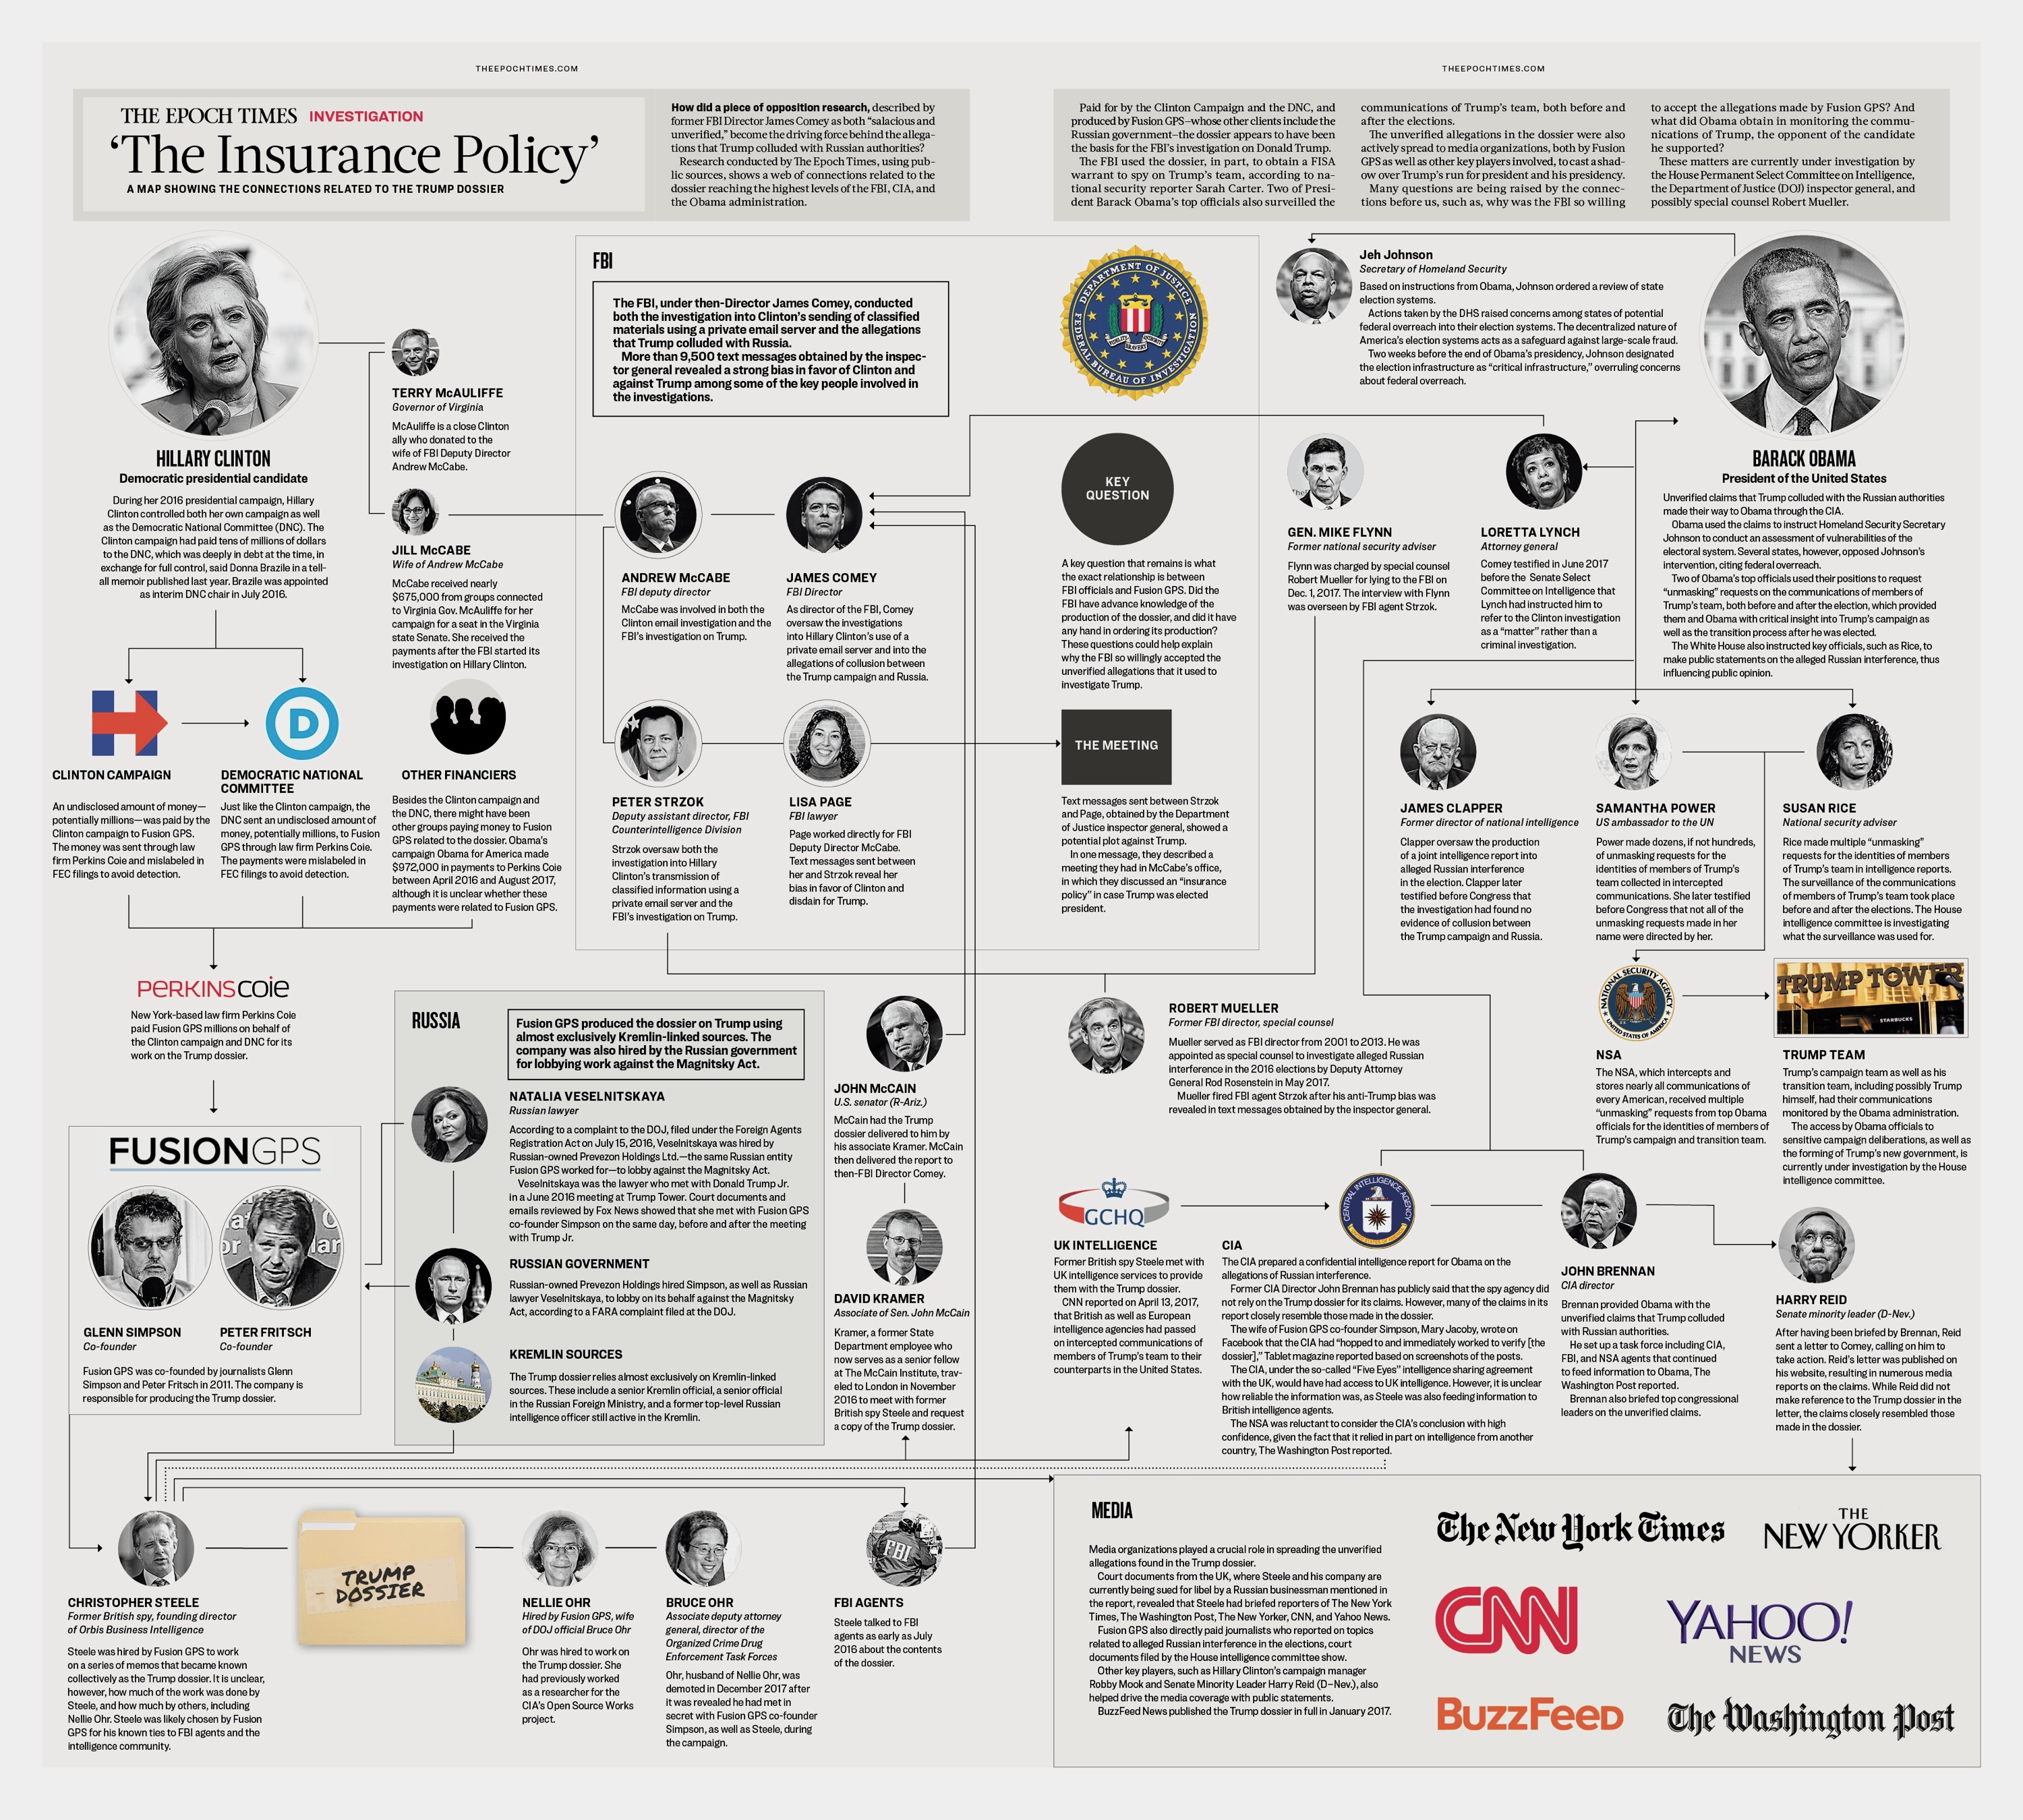 https://static.infowars.com/2013/05/i/Fusion-GPS-Map_The-Epoch-Times.jpg